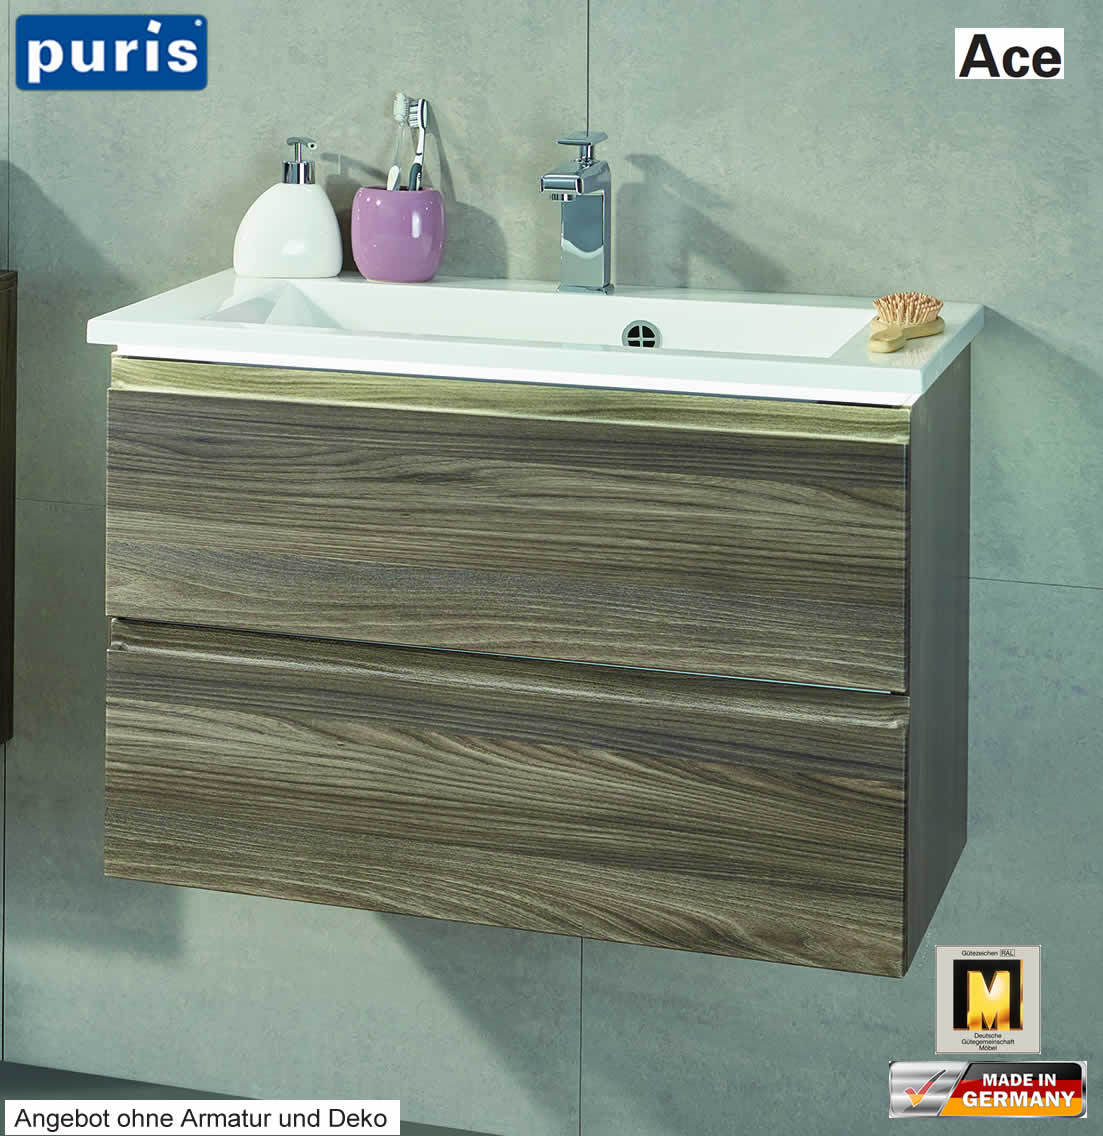 Puris ace waschtisch set 72 cm optional mit led impuls for Badezimmermobel set mit waschtisch